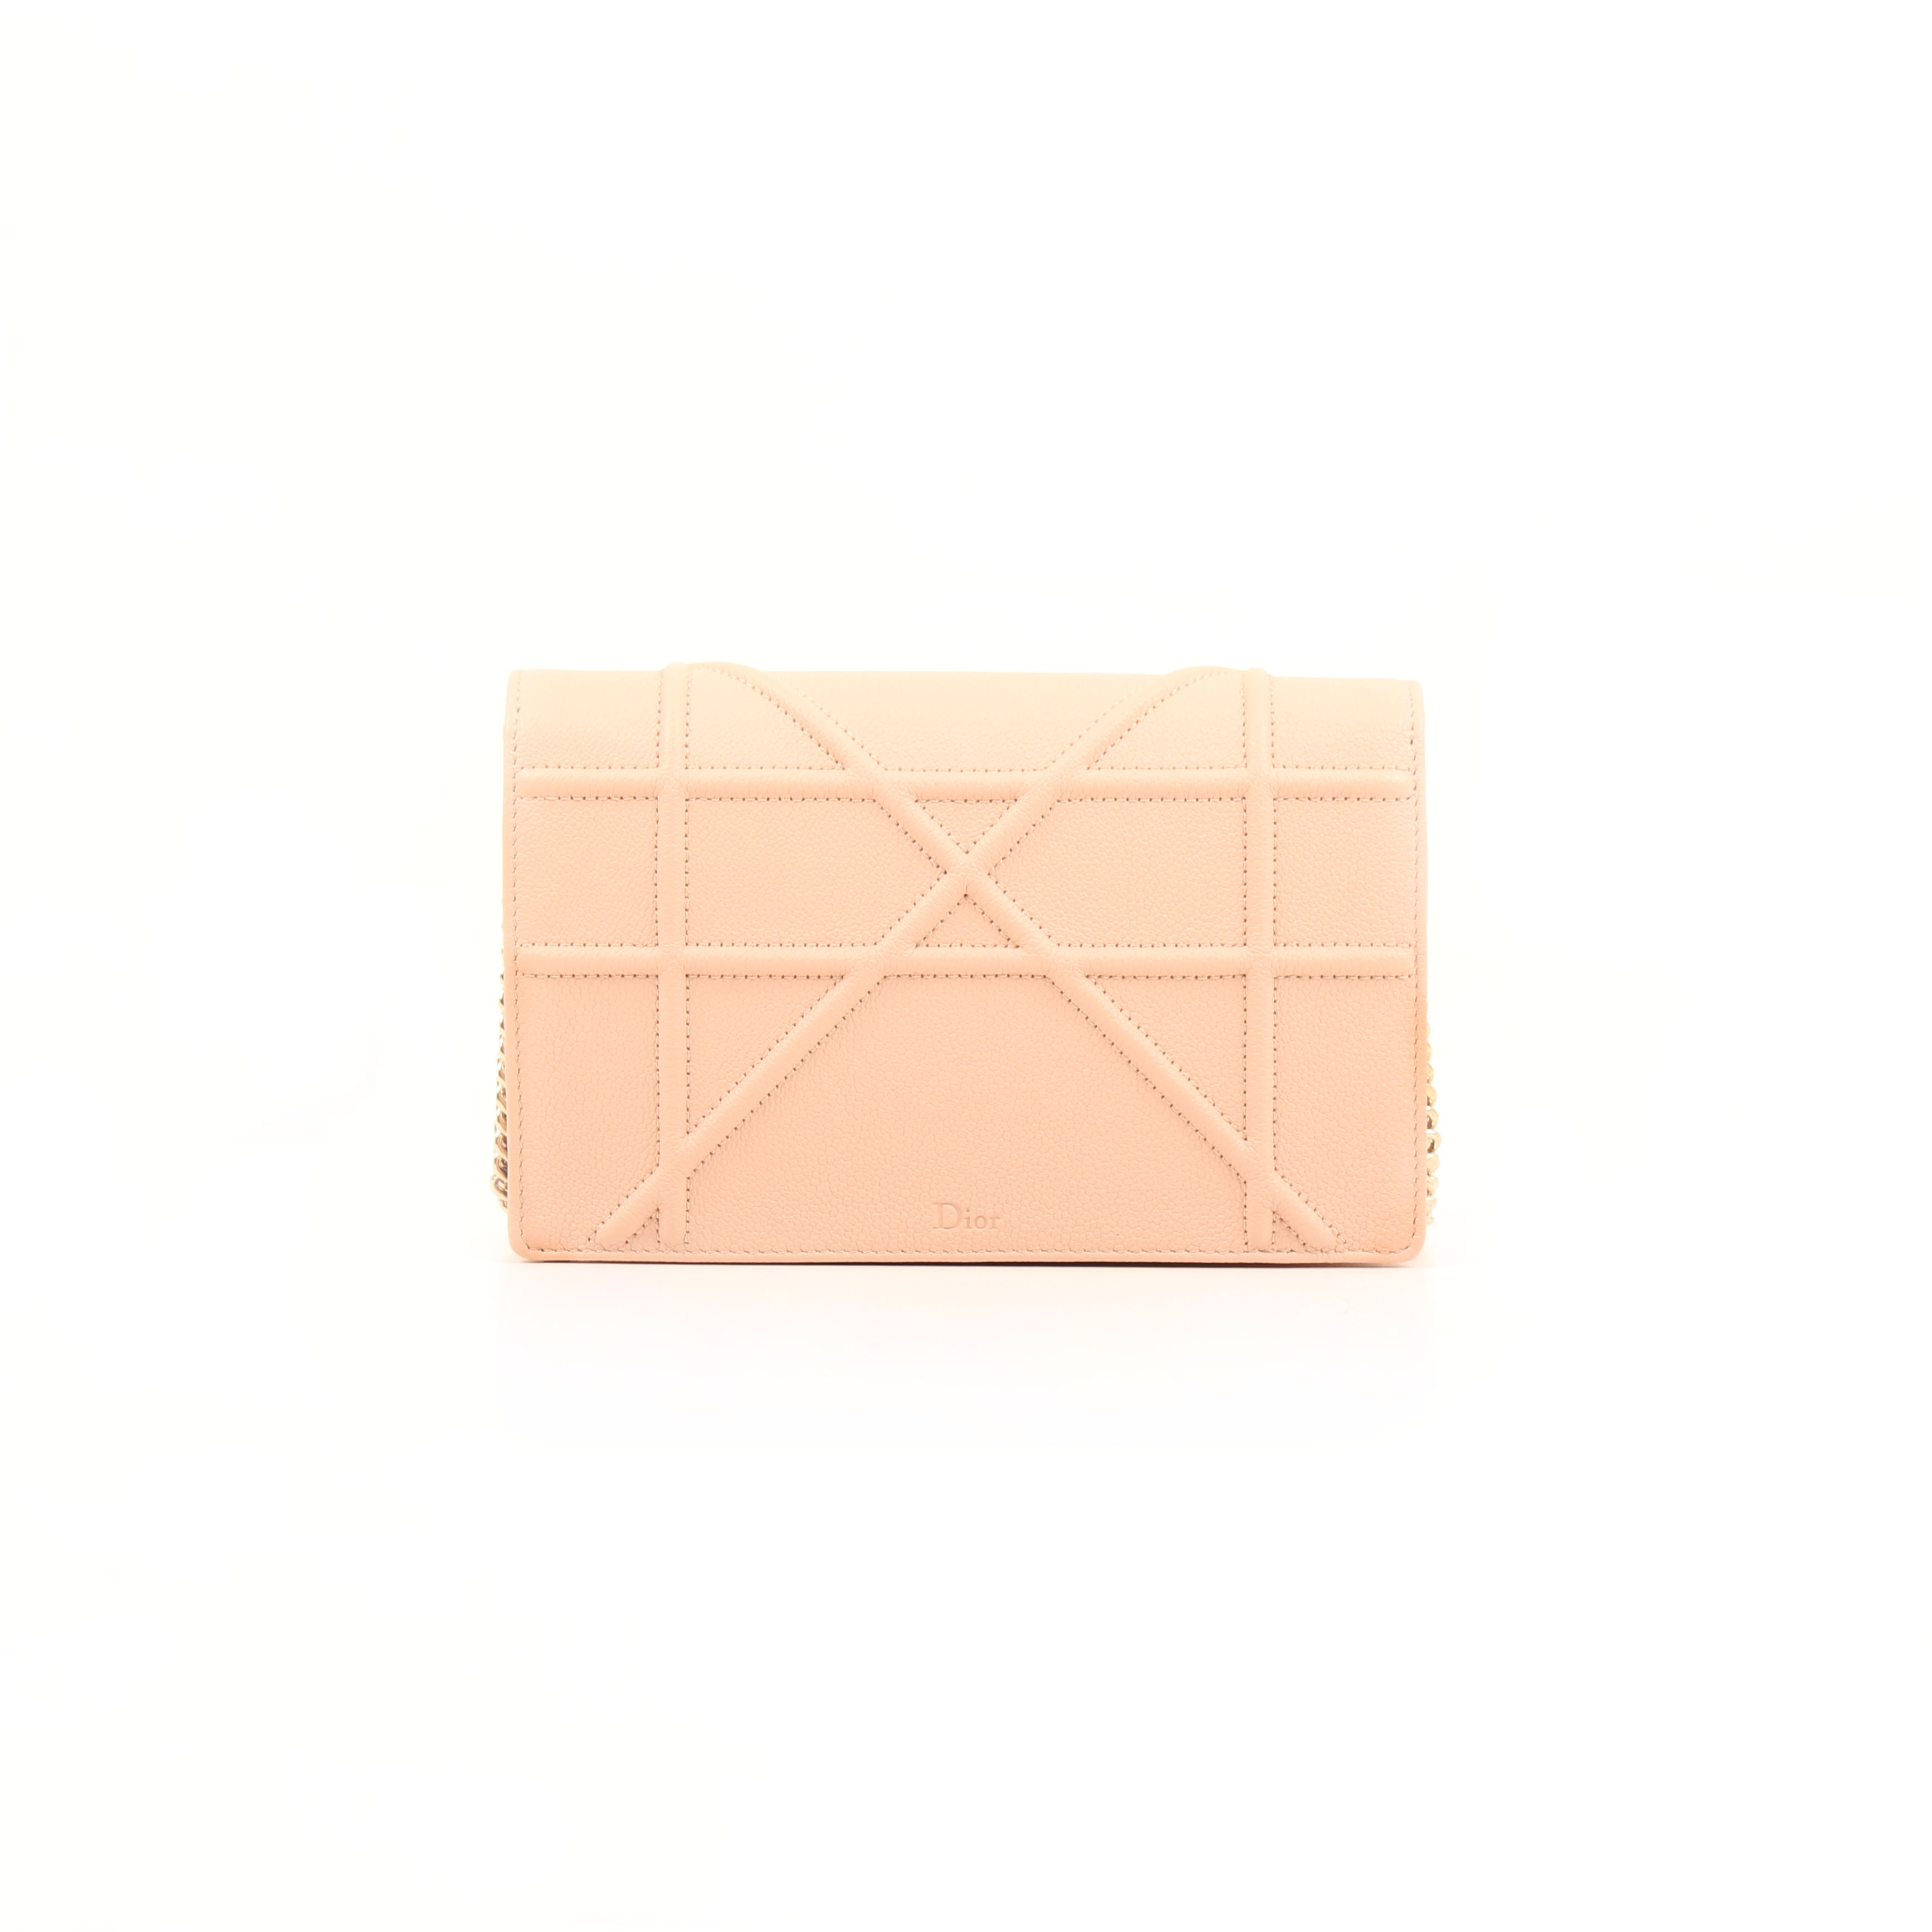 wallet on chain dior diorama pouch rosa nude trasera